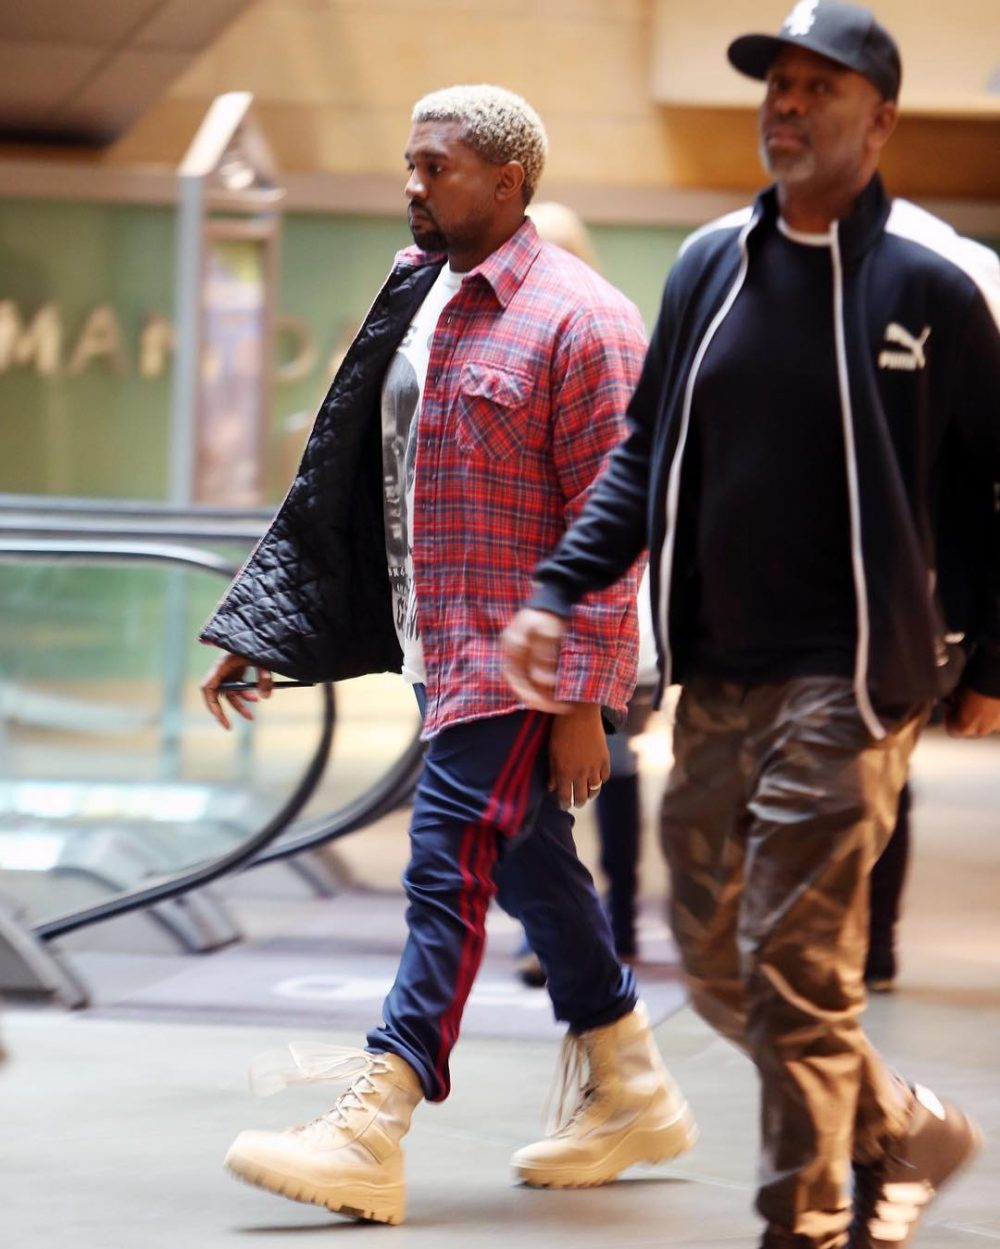 SPOTTED: Kanye West In Adidas Yeezy Season Calabasas Sweatpants and Boots